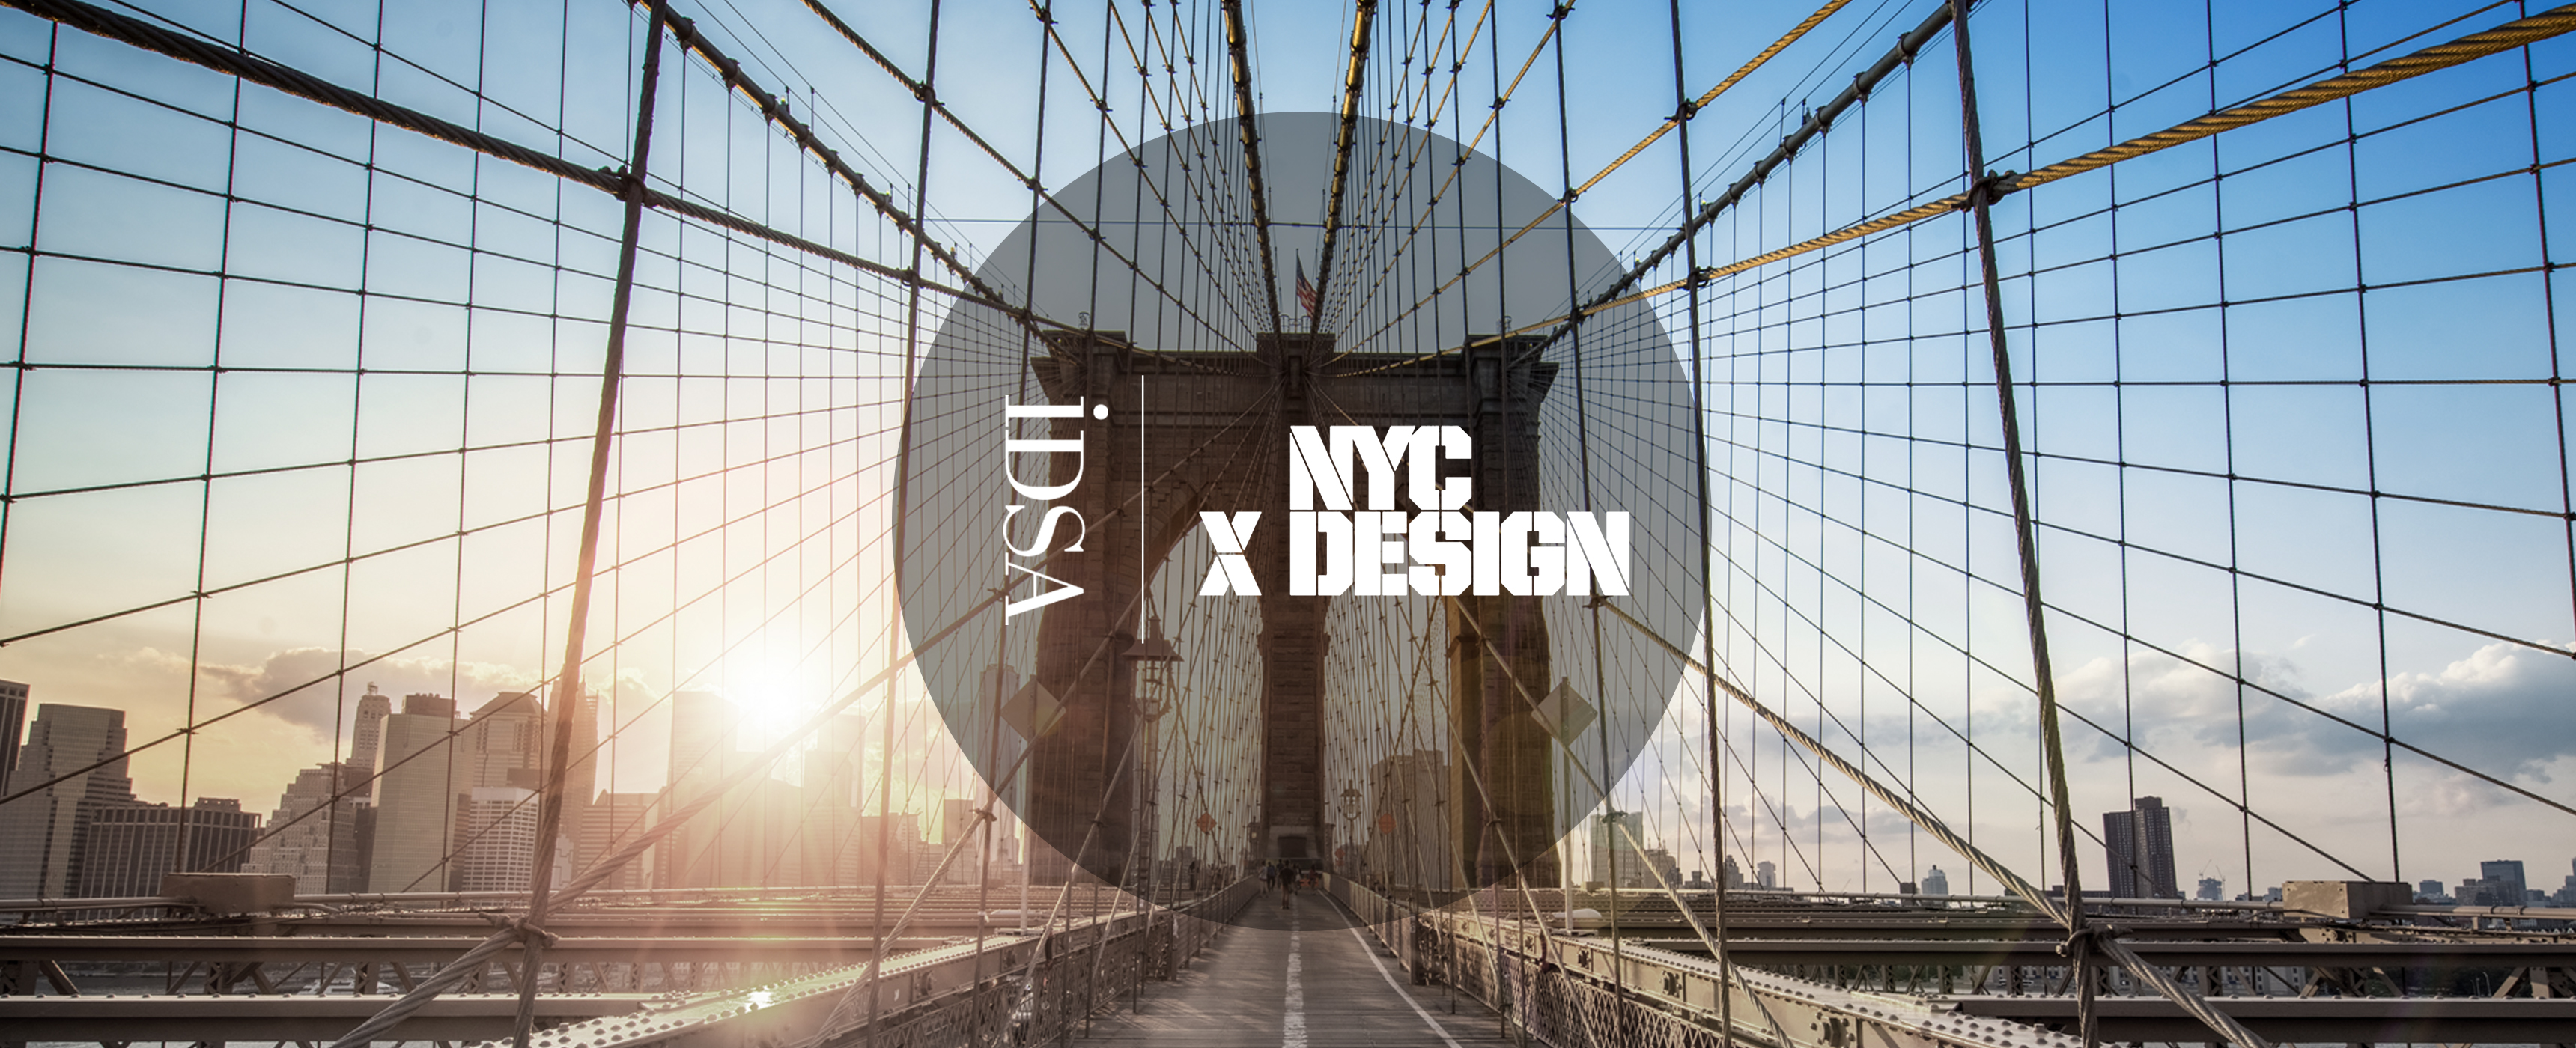 call for submissions nycxdesign awards nyc design IDSA and Industrial Design Hold Space at NYCxDESIGN 2019